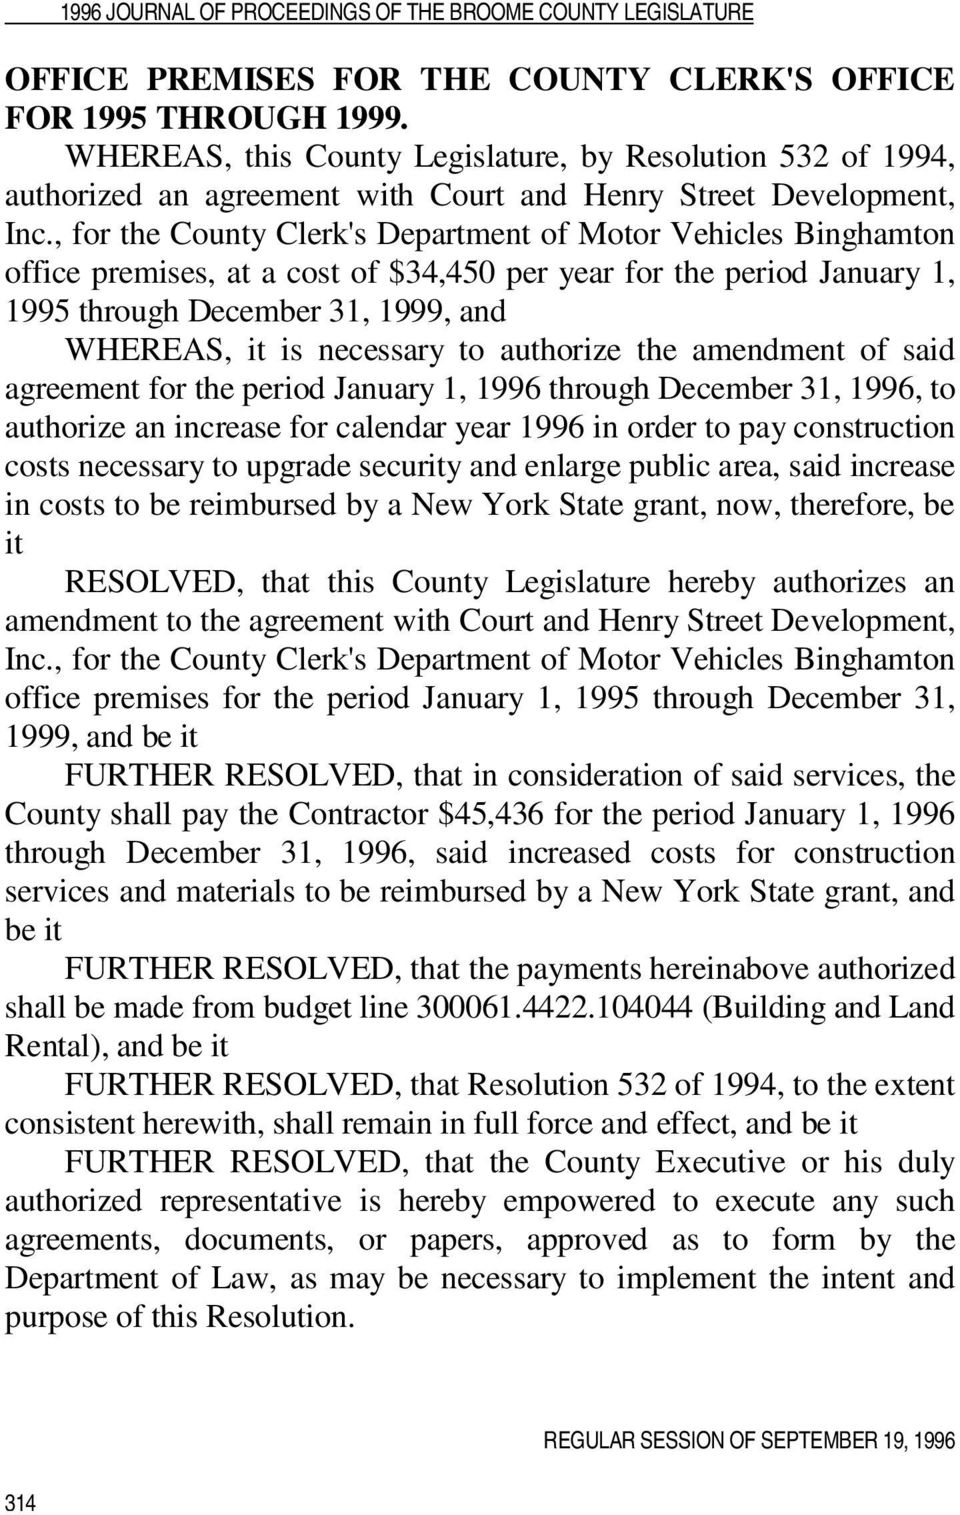 to authorize the amendment of said agreement for the period January 1, 1996 through December 31, 1996, to authorize an increase for calendar year 1996 in order to pay construction costs necessary to